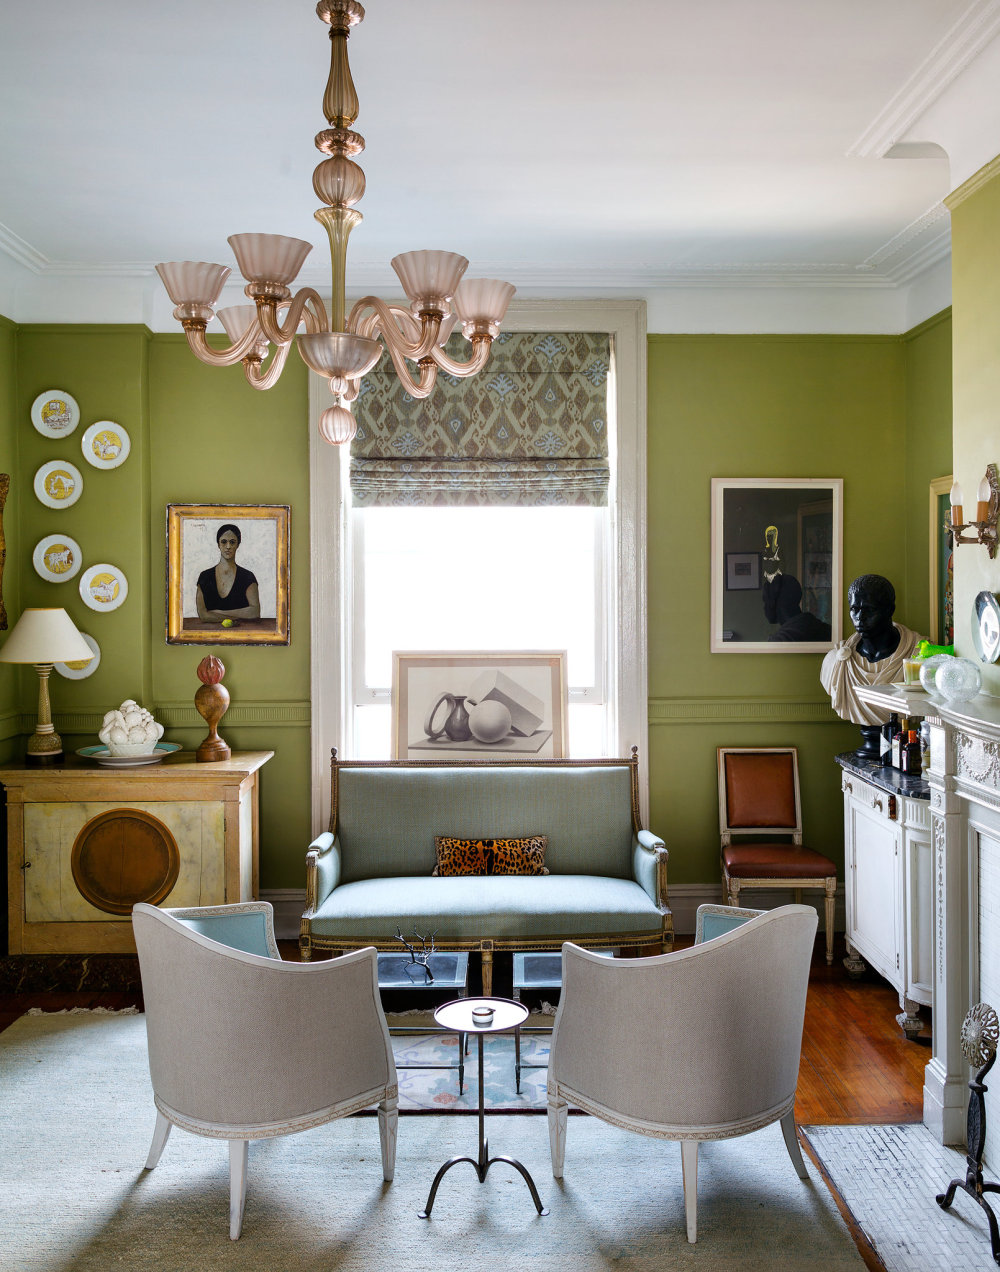 At Home With Sheila Bridges, Harlem